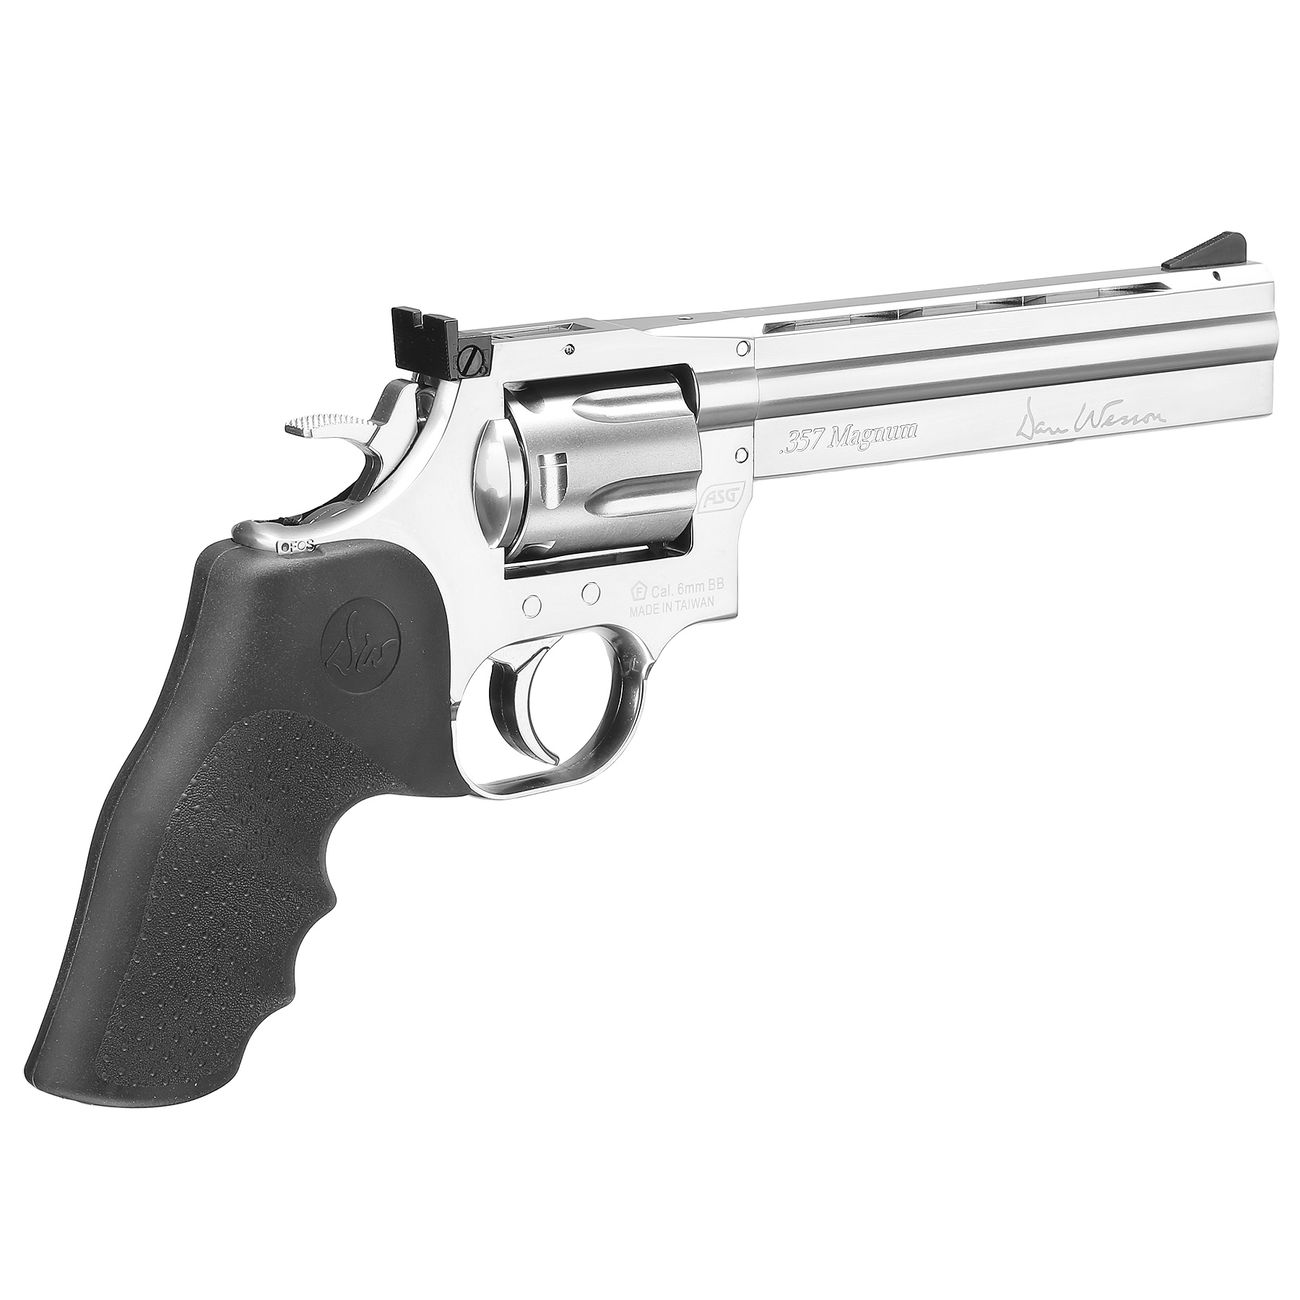 ASG Dan Wesson 715 6 Zoll Revolver Vollmetall CO2 6mm BB chrom Low Power Version 5